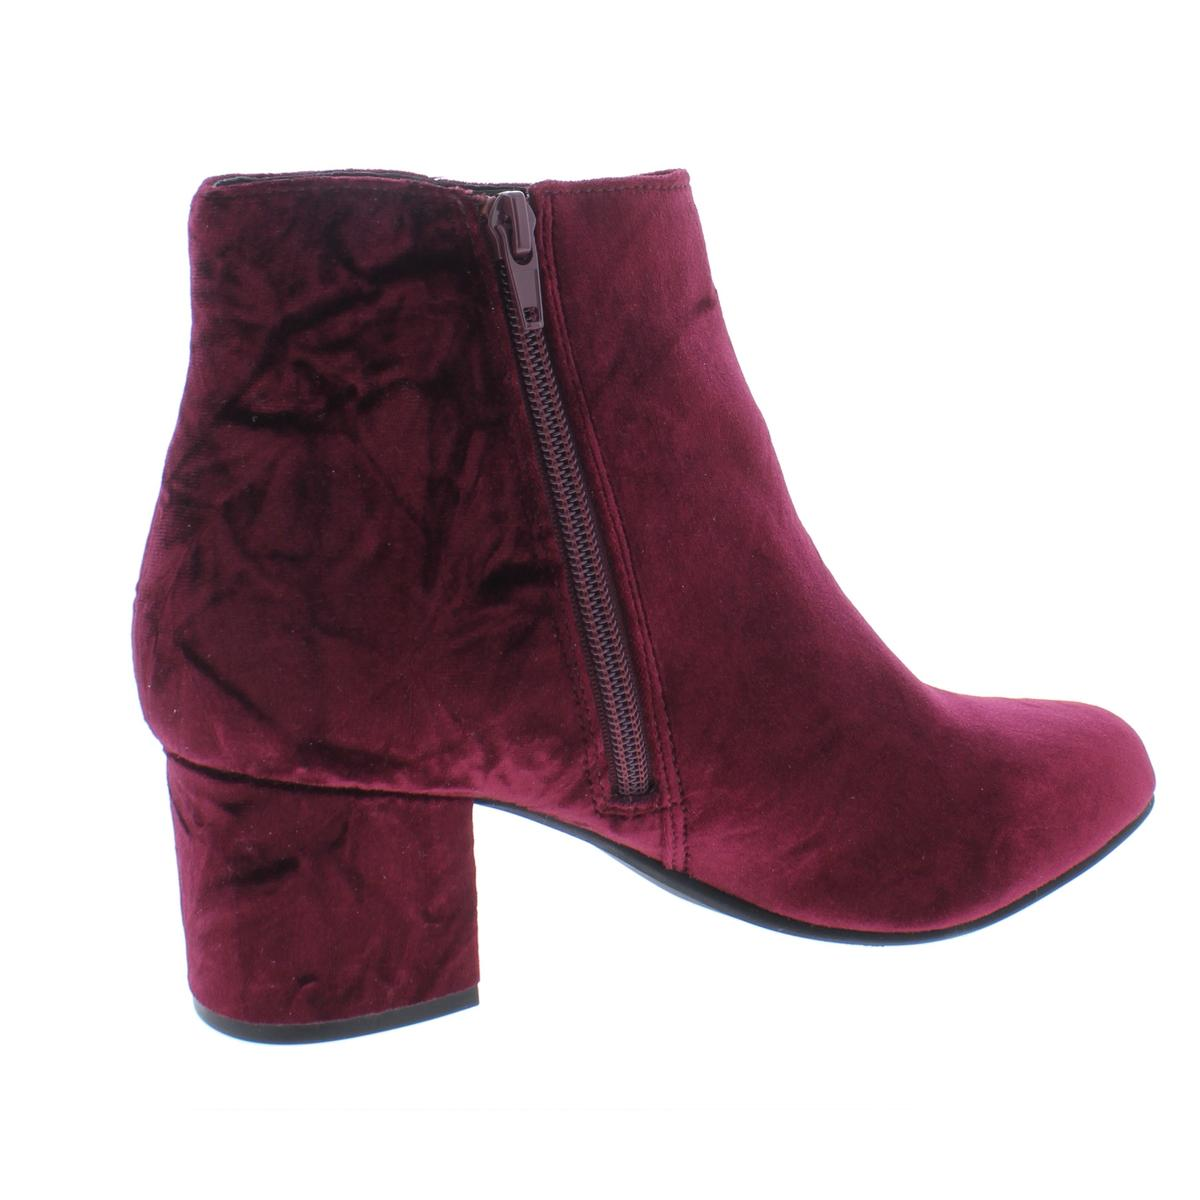 38cca794638 Details about Steve Madden Womens Irina Purple Velvet Booties Shoes 7  Medium (B